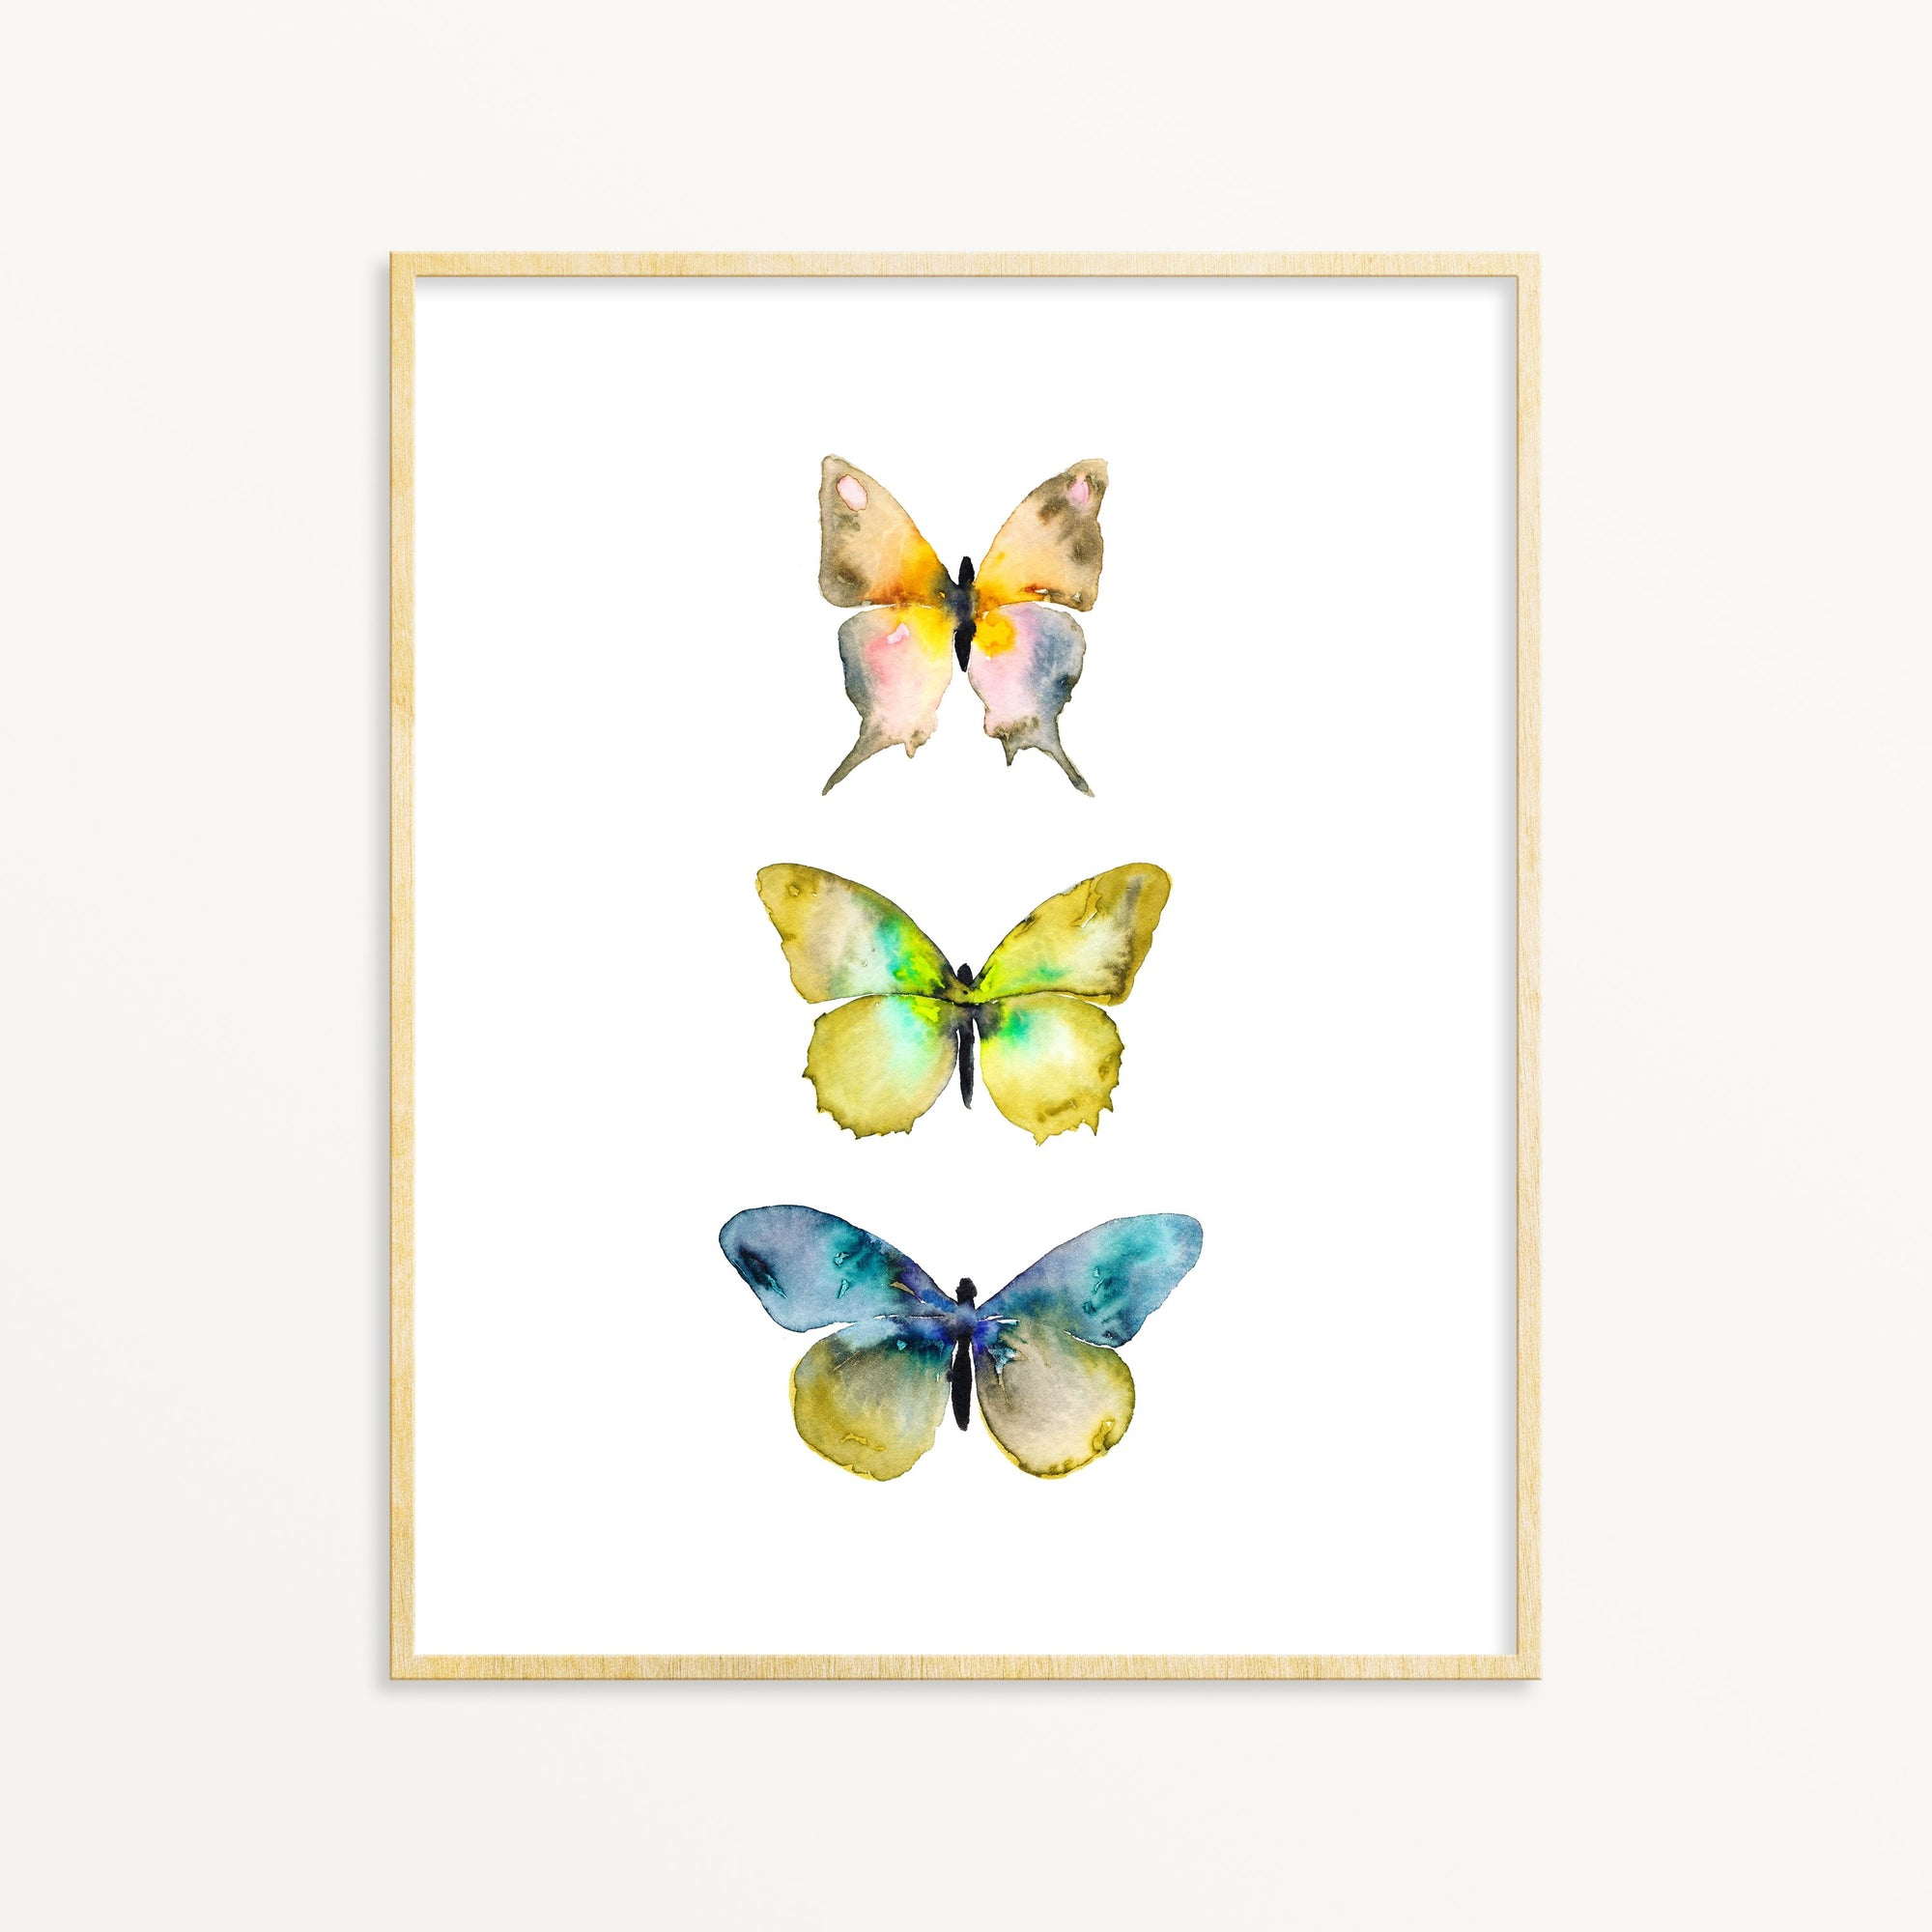 3 Butterflies No. 4